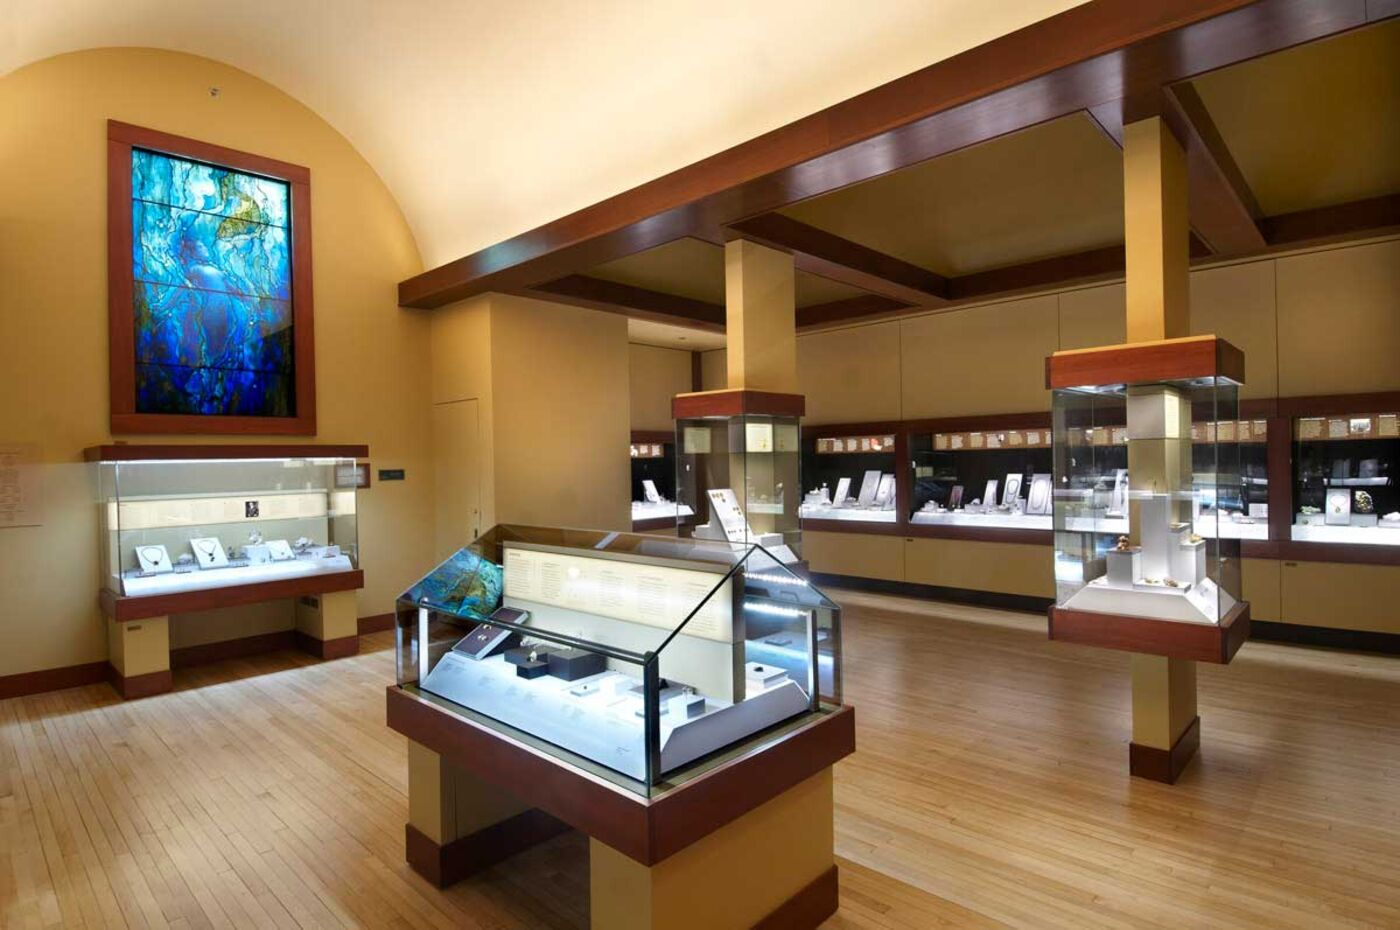 The Grainger Hall of Gems gallery at the Field Museum, including glass display cases and a blue stained glass window.